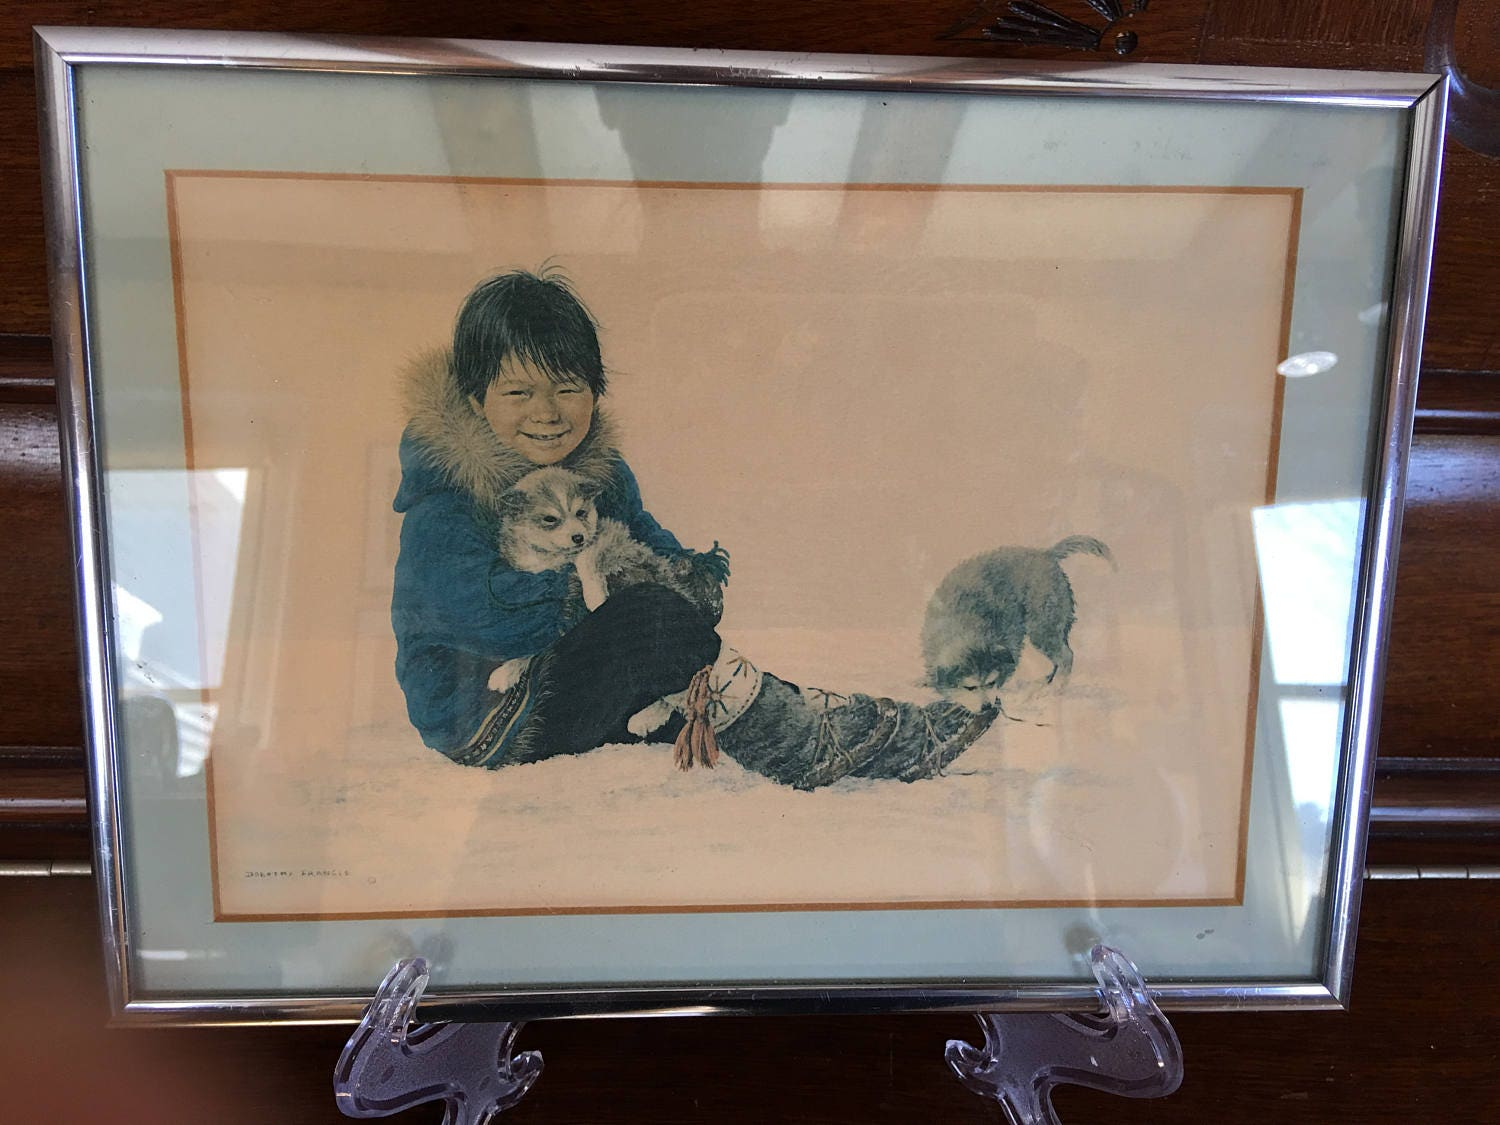 dorothy francis lithograph inuit child holding a puppy framed